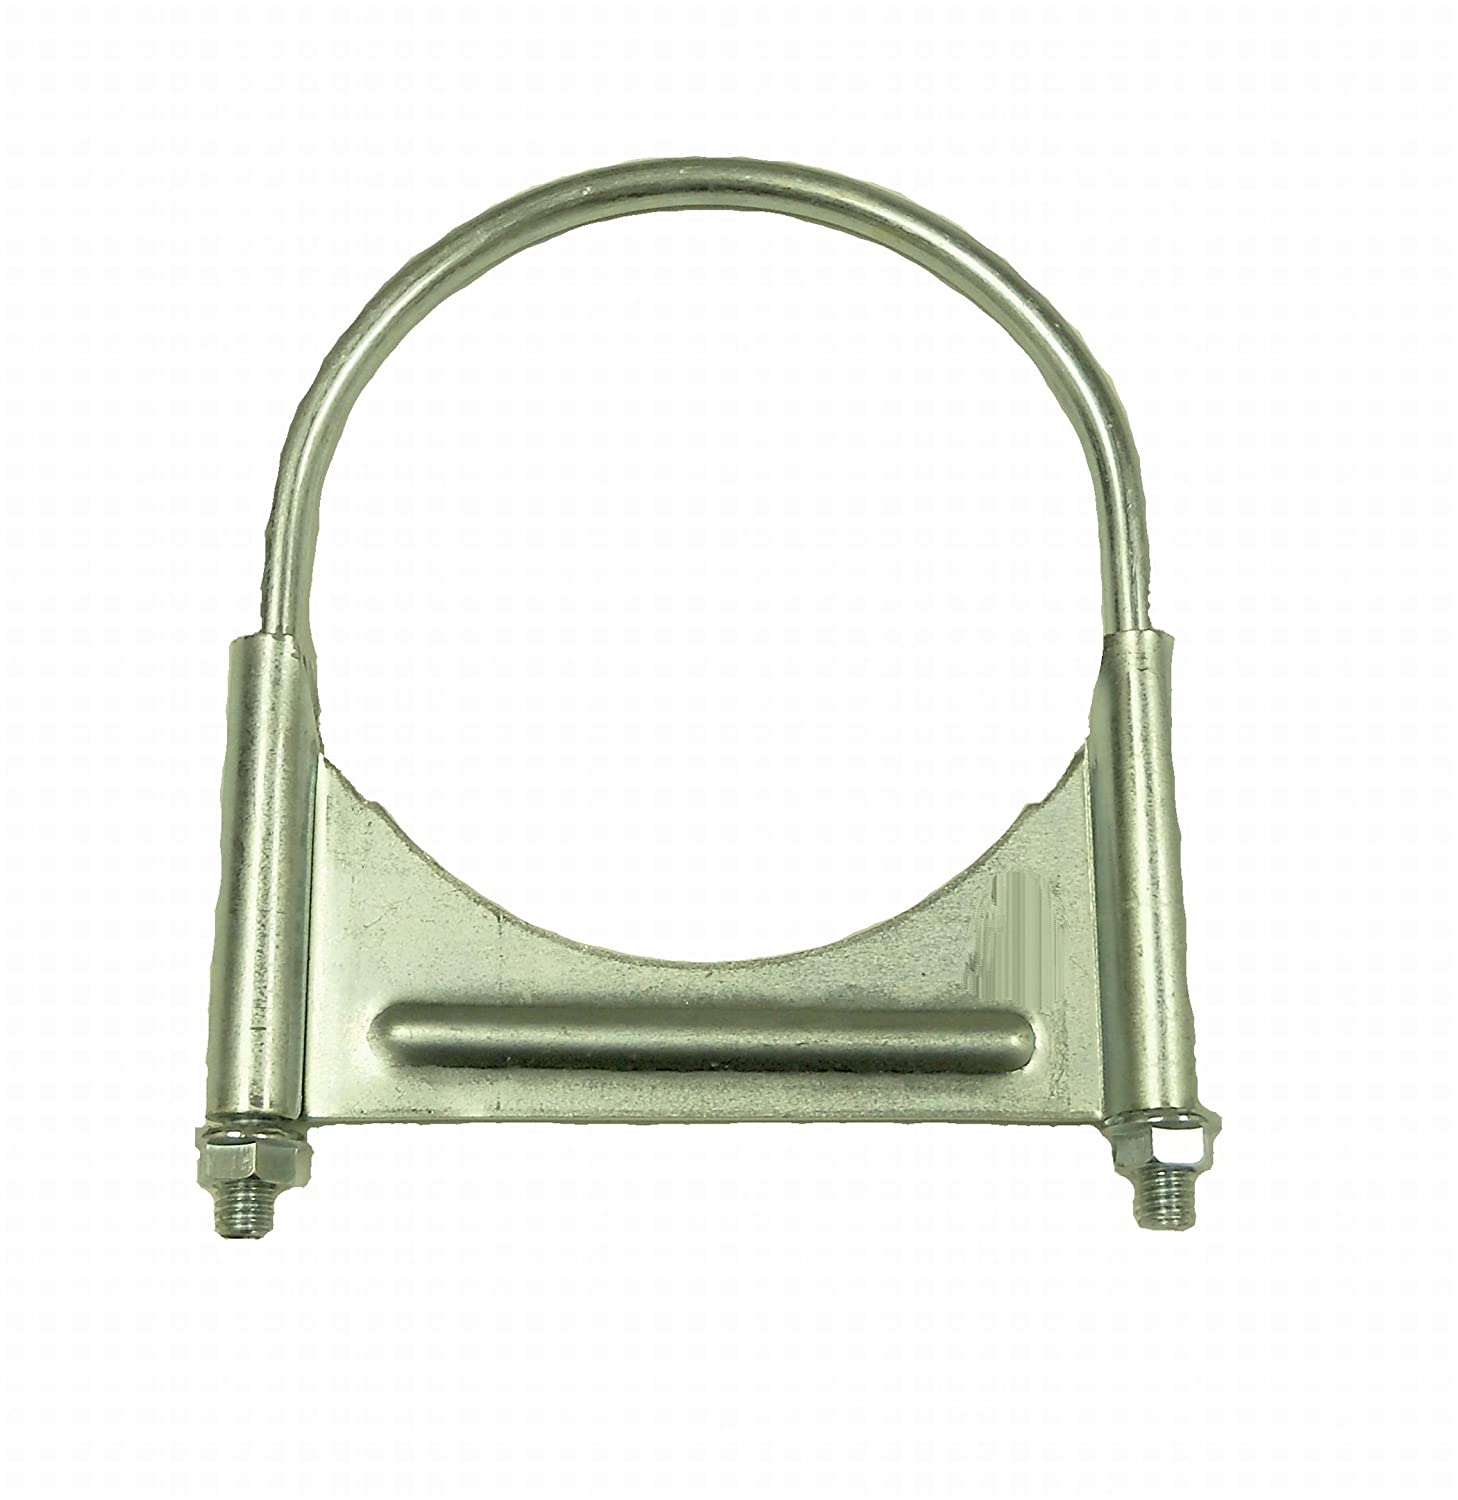 SmartParts 510600 6' Zinc Plated Round U Bolt Guillotine Exhaust Clamp